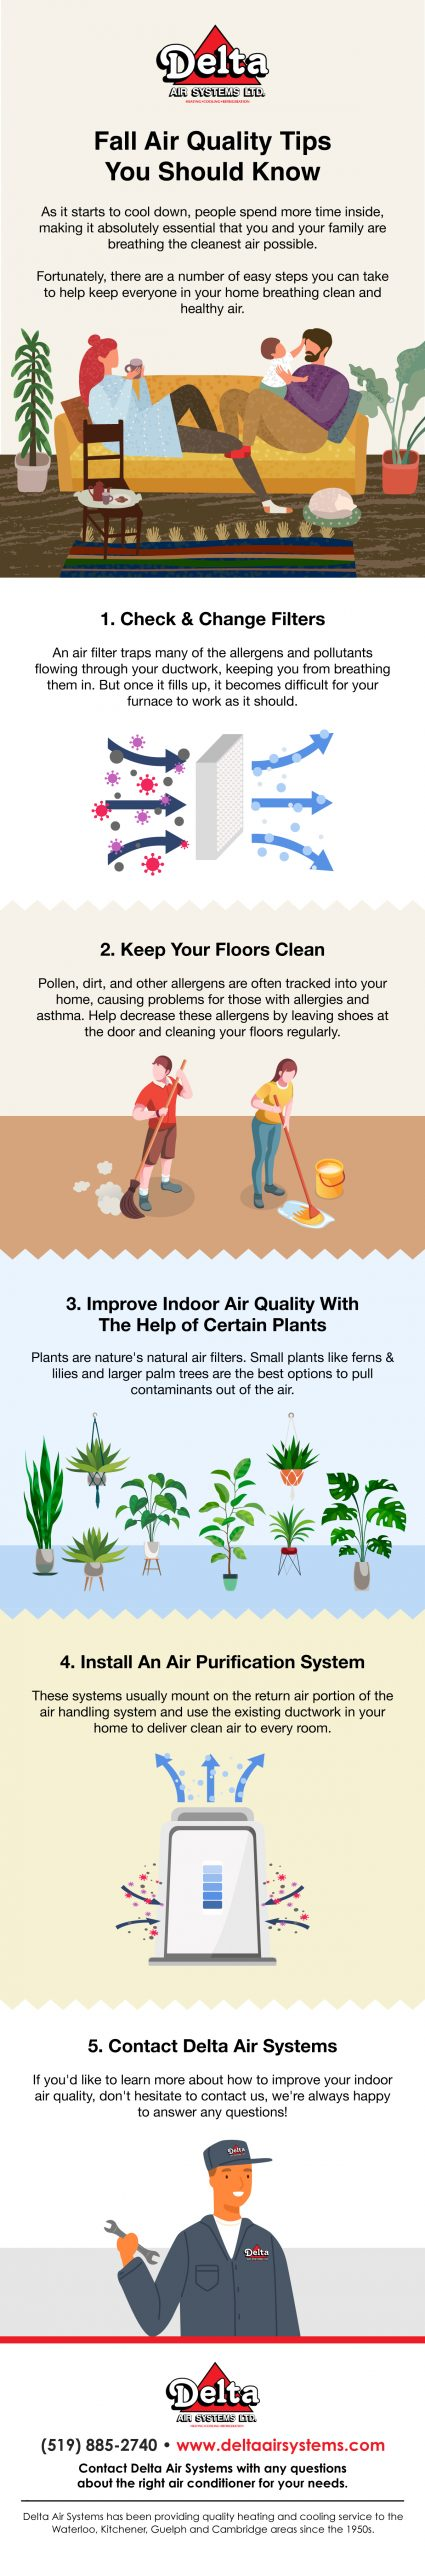 air quality tips infographic